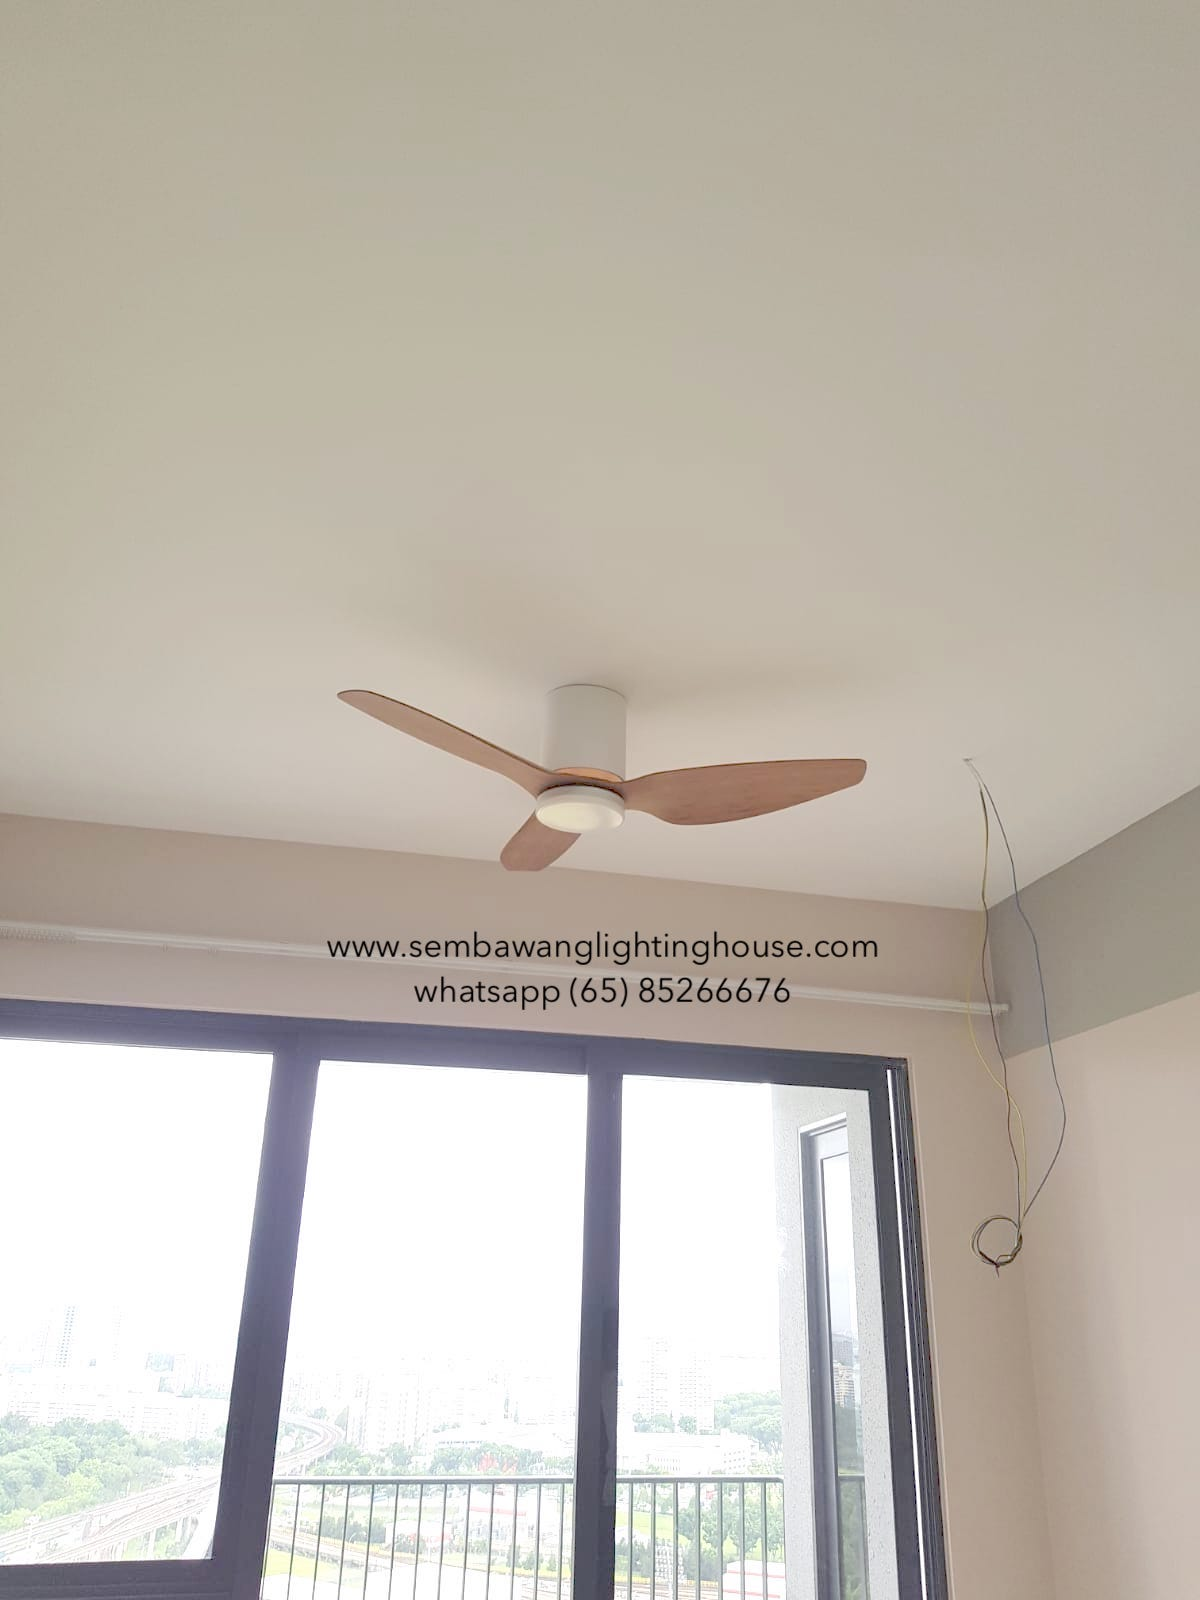 decken-dk005-hugger-dc-ceiling-fan-sample-sembawang-lighting-house-02.jpg